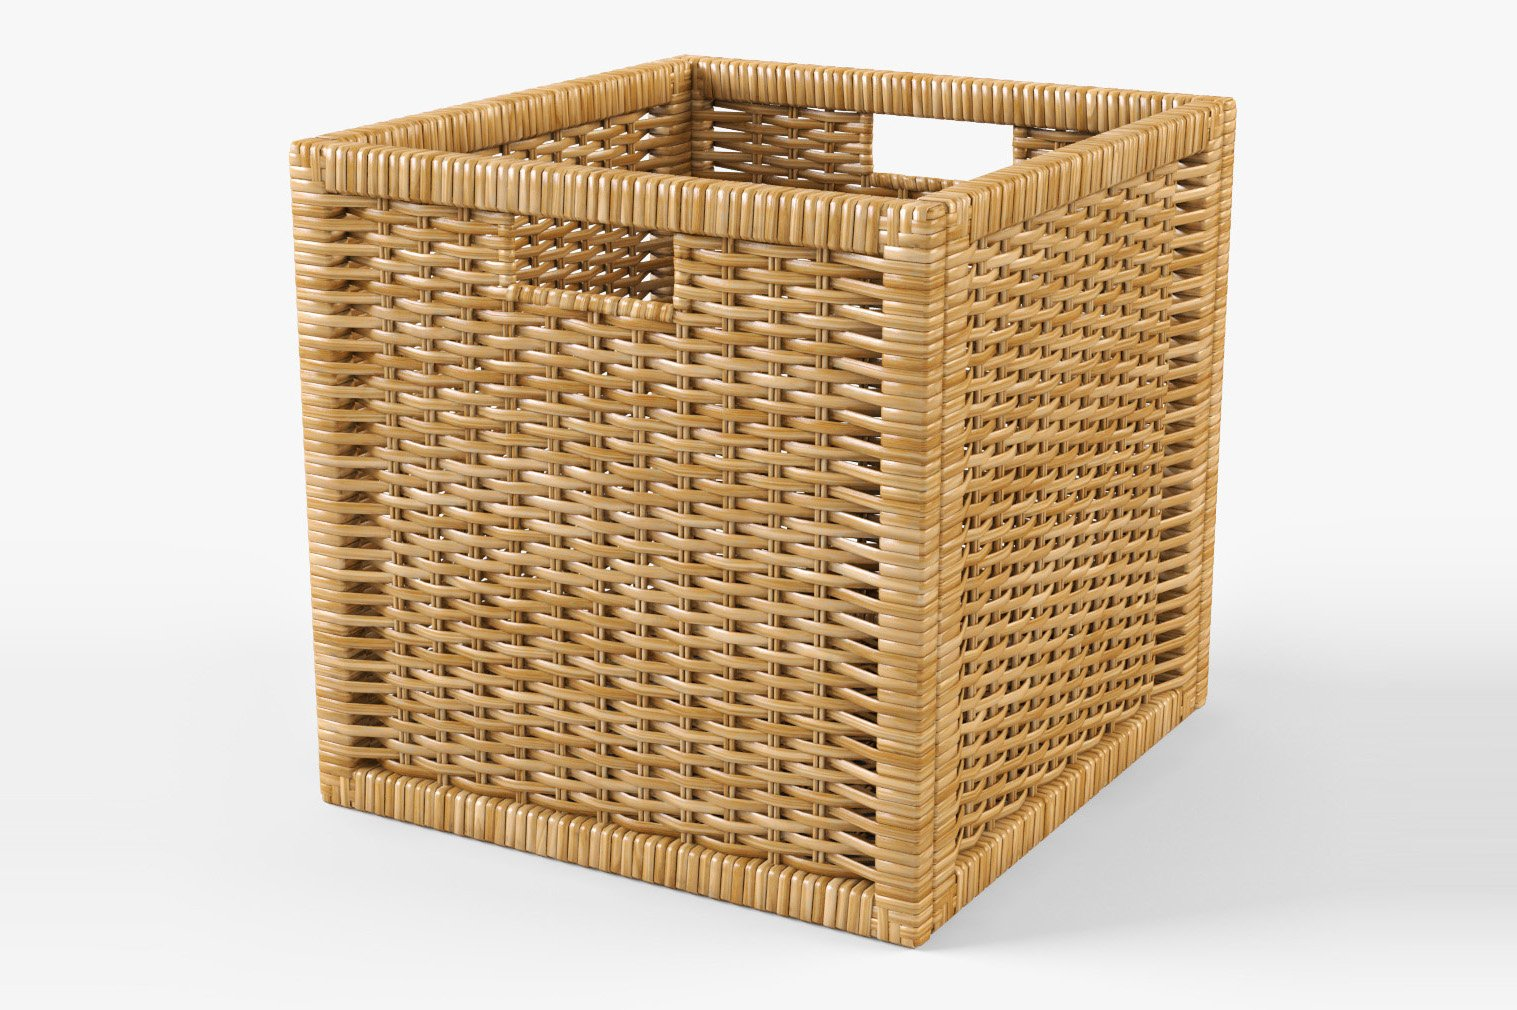 rattan basket ikea branas natural objects creative market. Black Bedroom Furniture Sets. Home Design Ideas